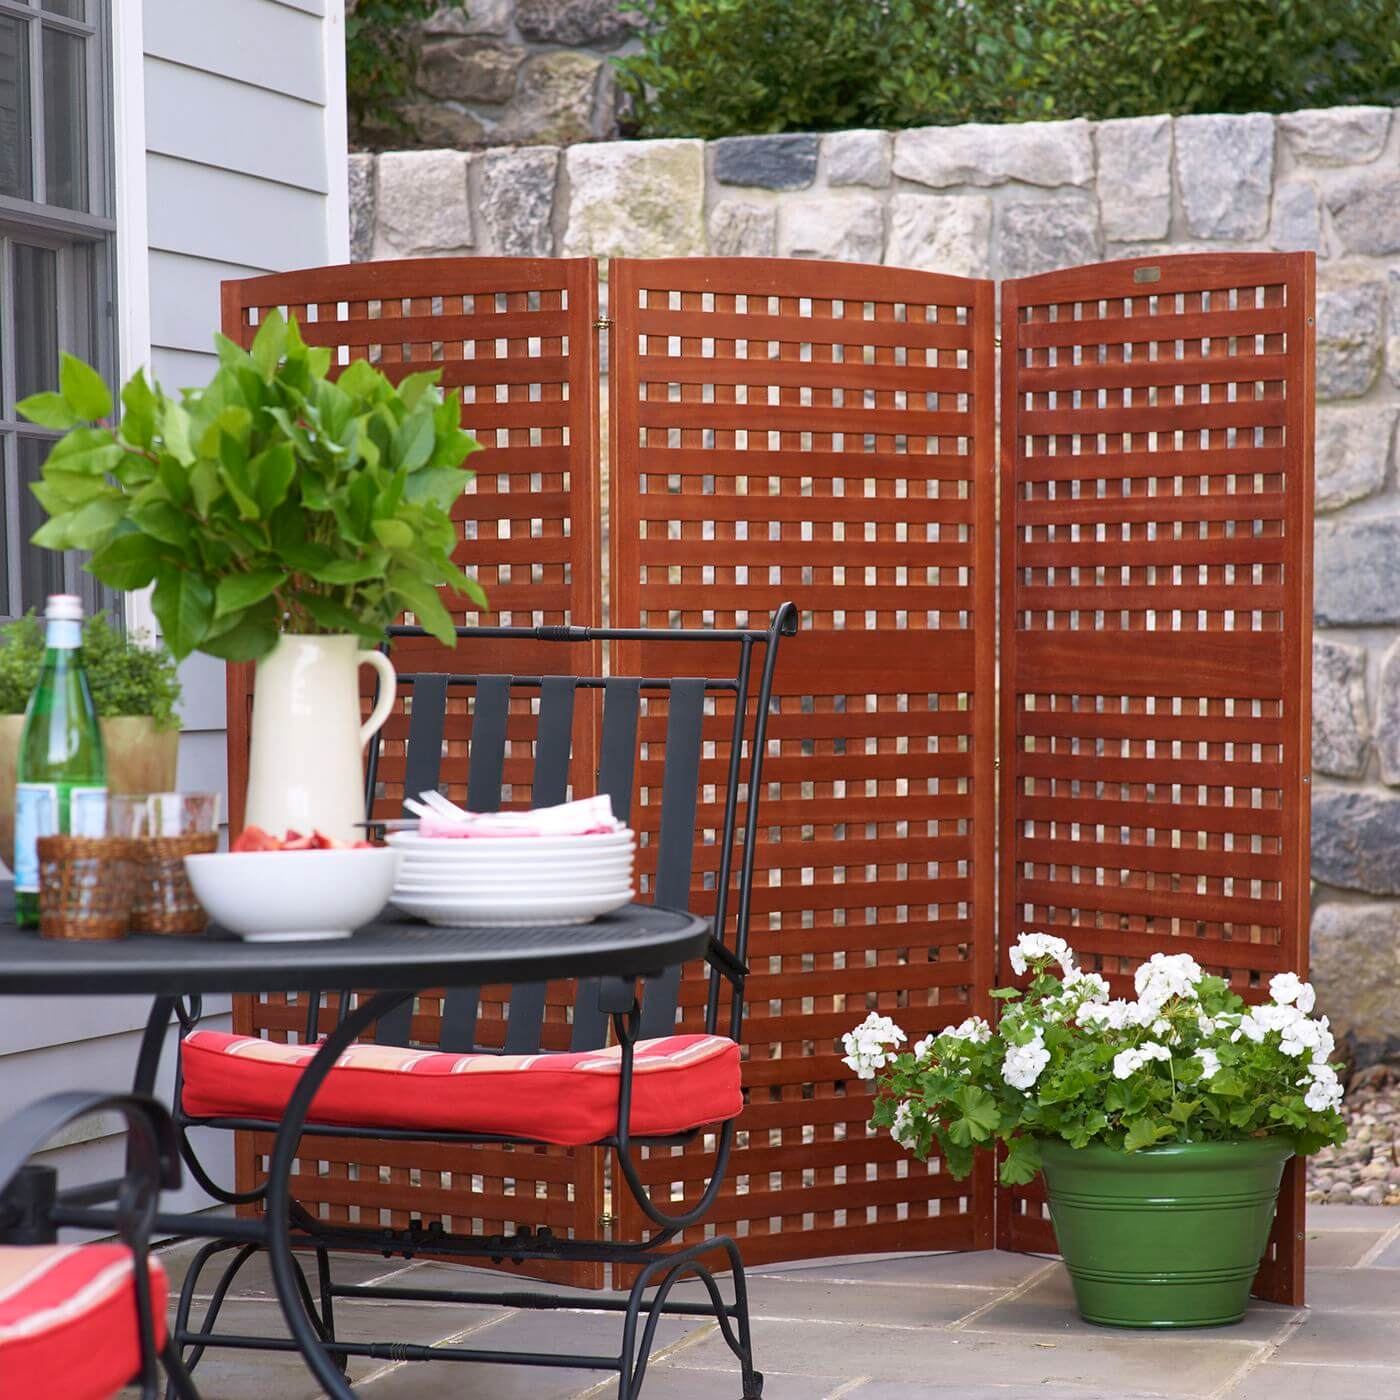 BRING OUT THE PORTABLE PANELS FOR INEXPENSIVE PATIO SHADES IDEAS